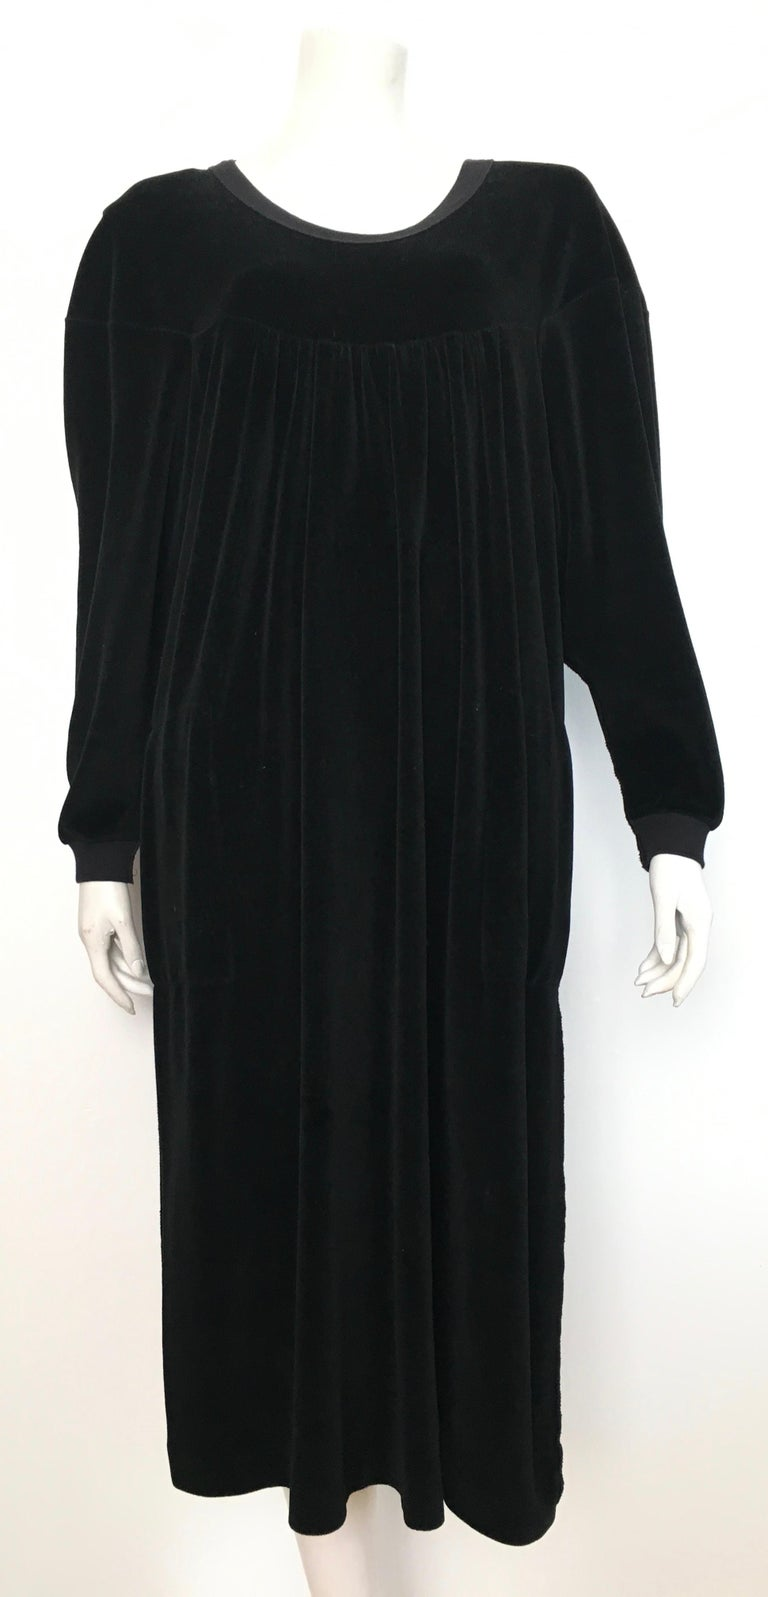 Sonia Rykiel 1980s Black Velour Dress with Pockets & Cardigan Size Large. For Sale 8